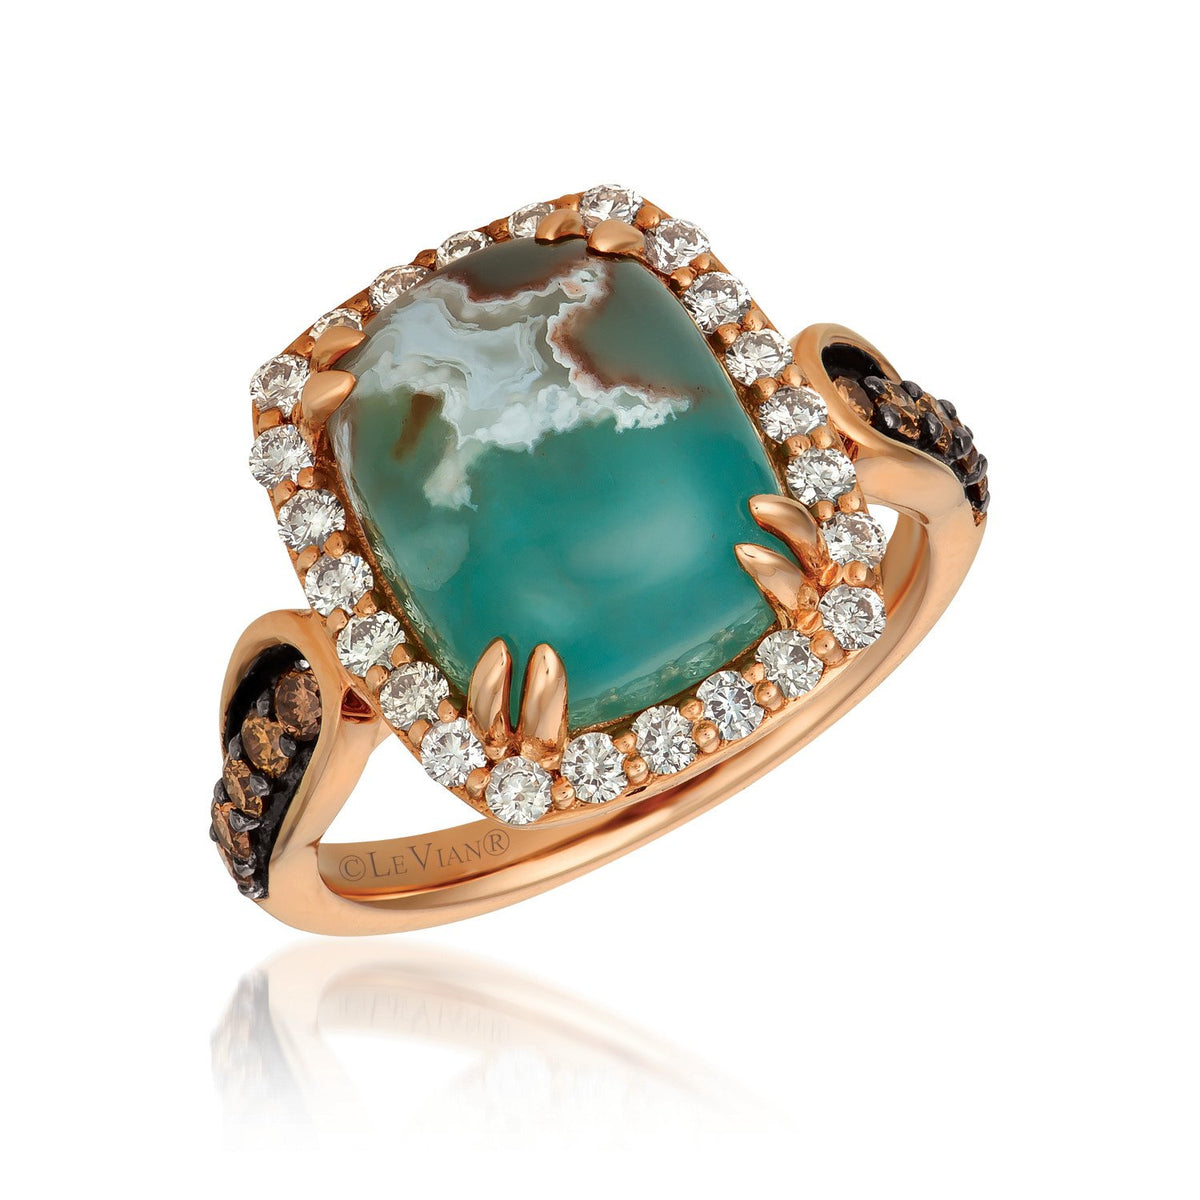 le vian creme brulee® ring featuring 6 cts